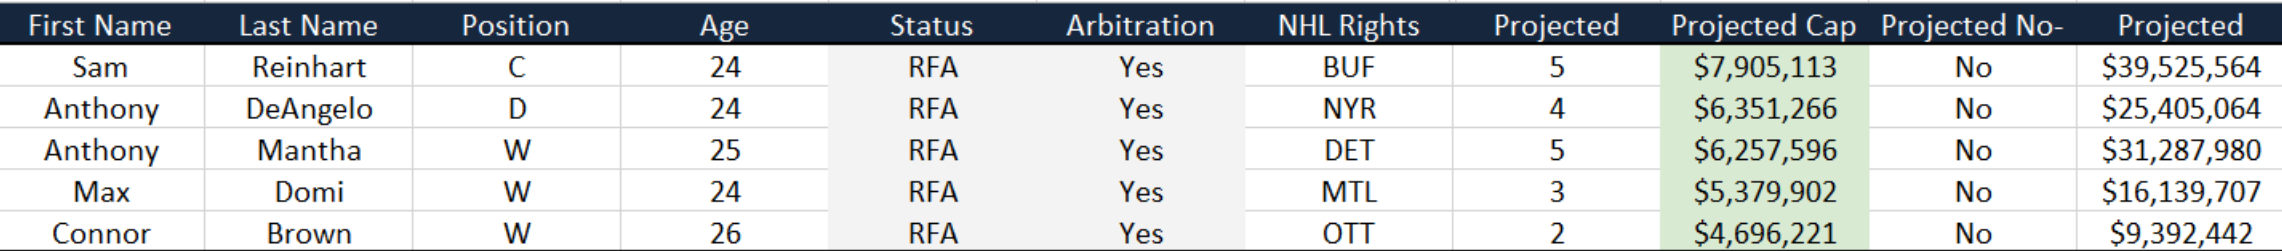 Contract Projections RFA Arb